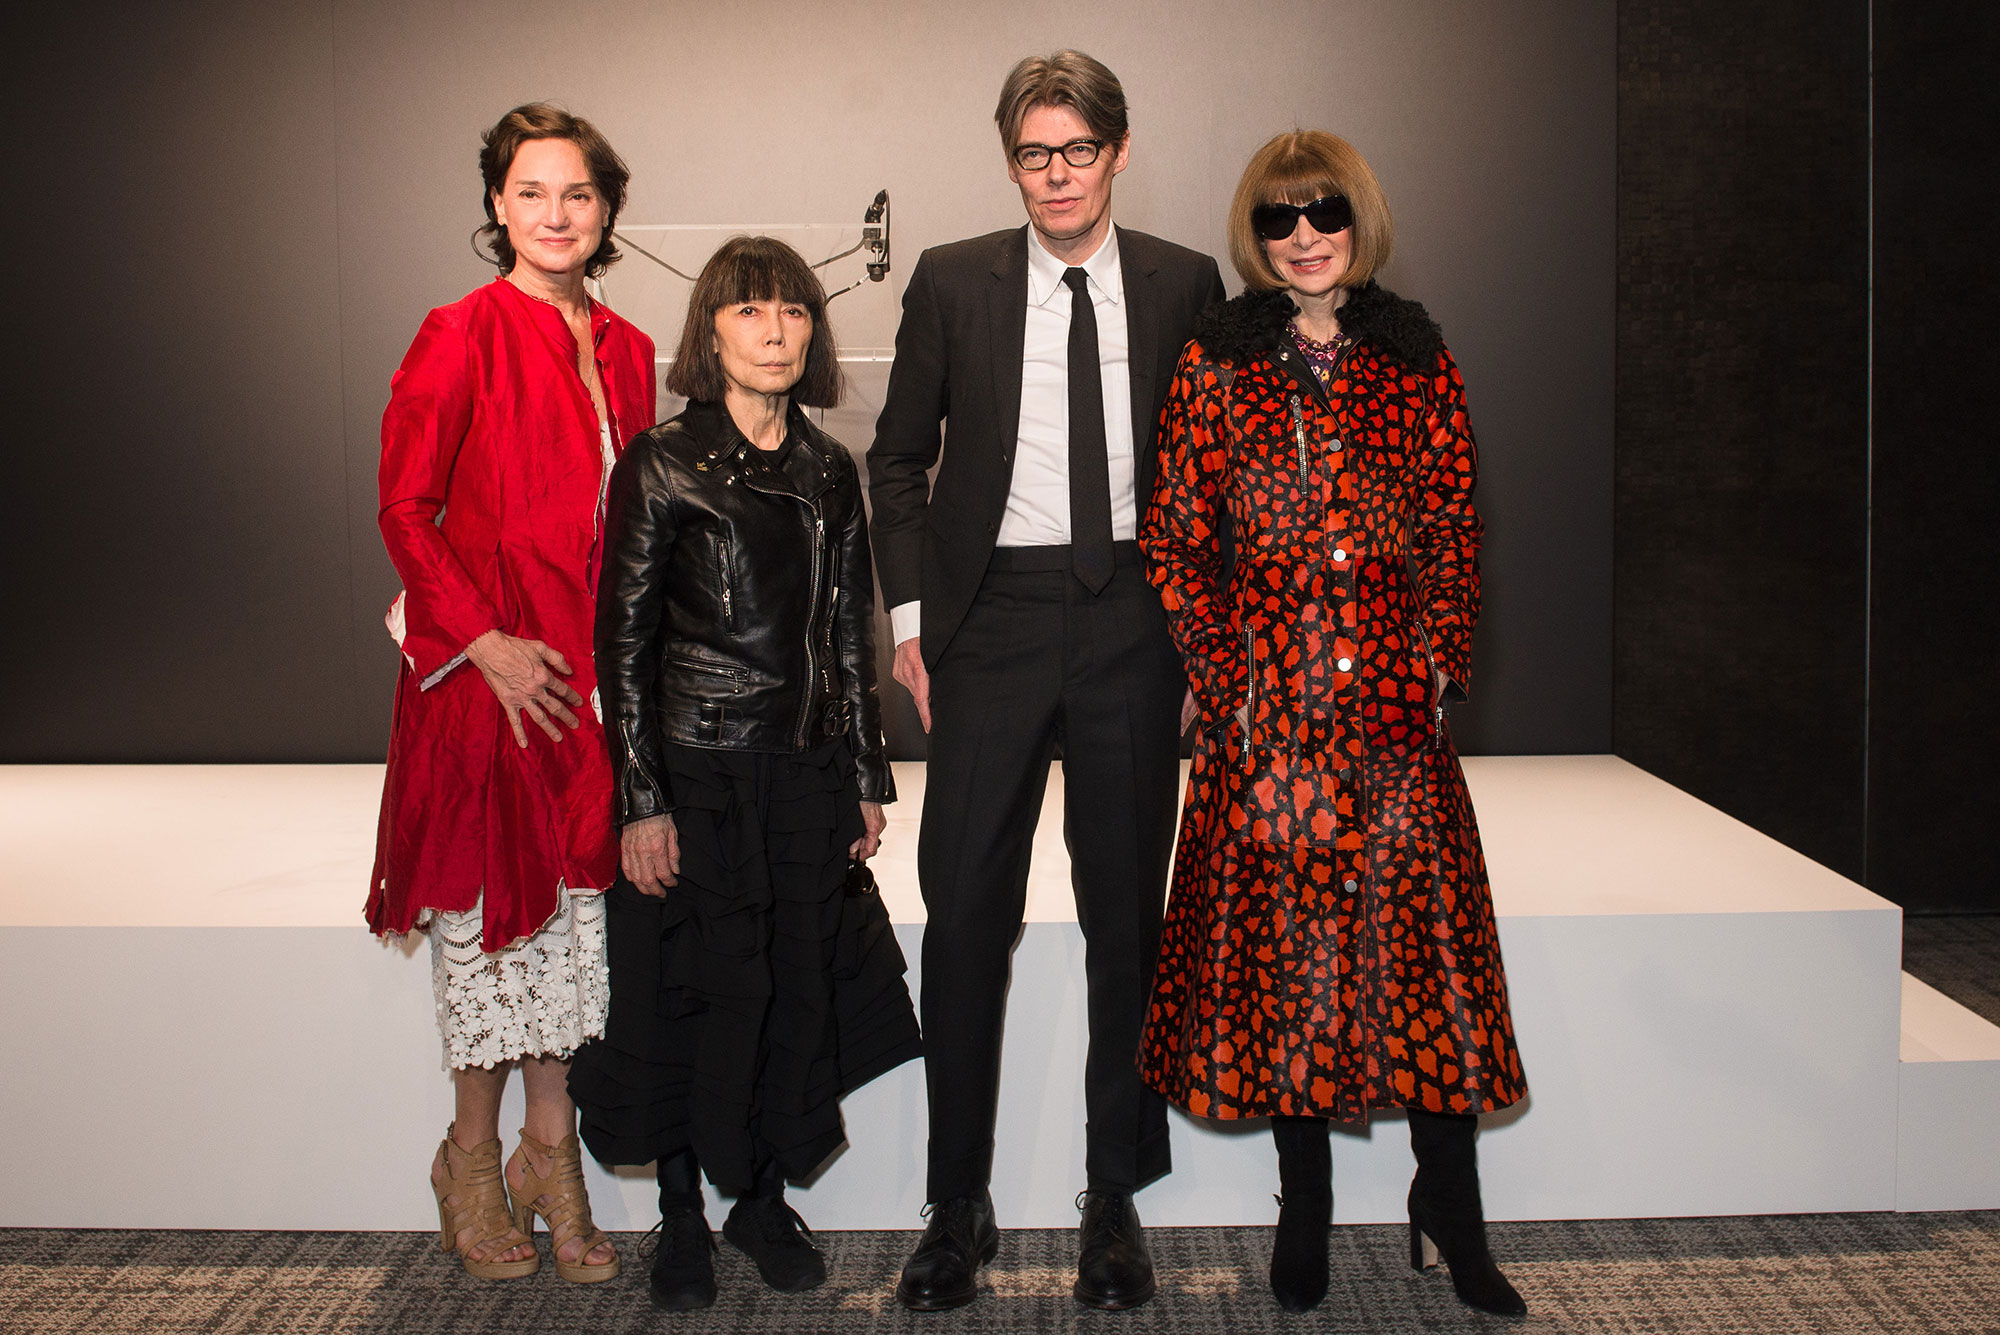 (from left) Carrie Rebora Barratt, Rei Kawakubo, Andrew Bolton, and Anna Wintour at The Met's Rei Kawakubo/Comme des Garçons: Art of the In-Between advance press event. Courtesy of The Metropolitan Museum of Art/BFA.com